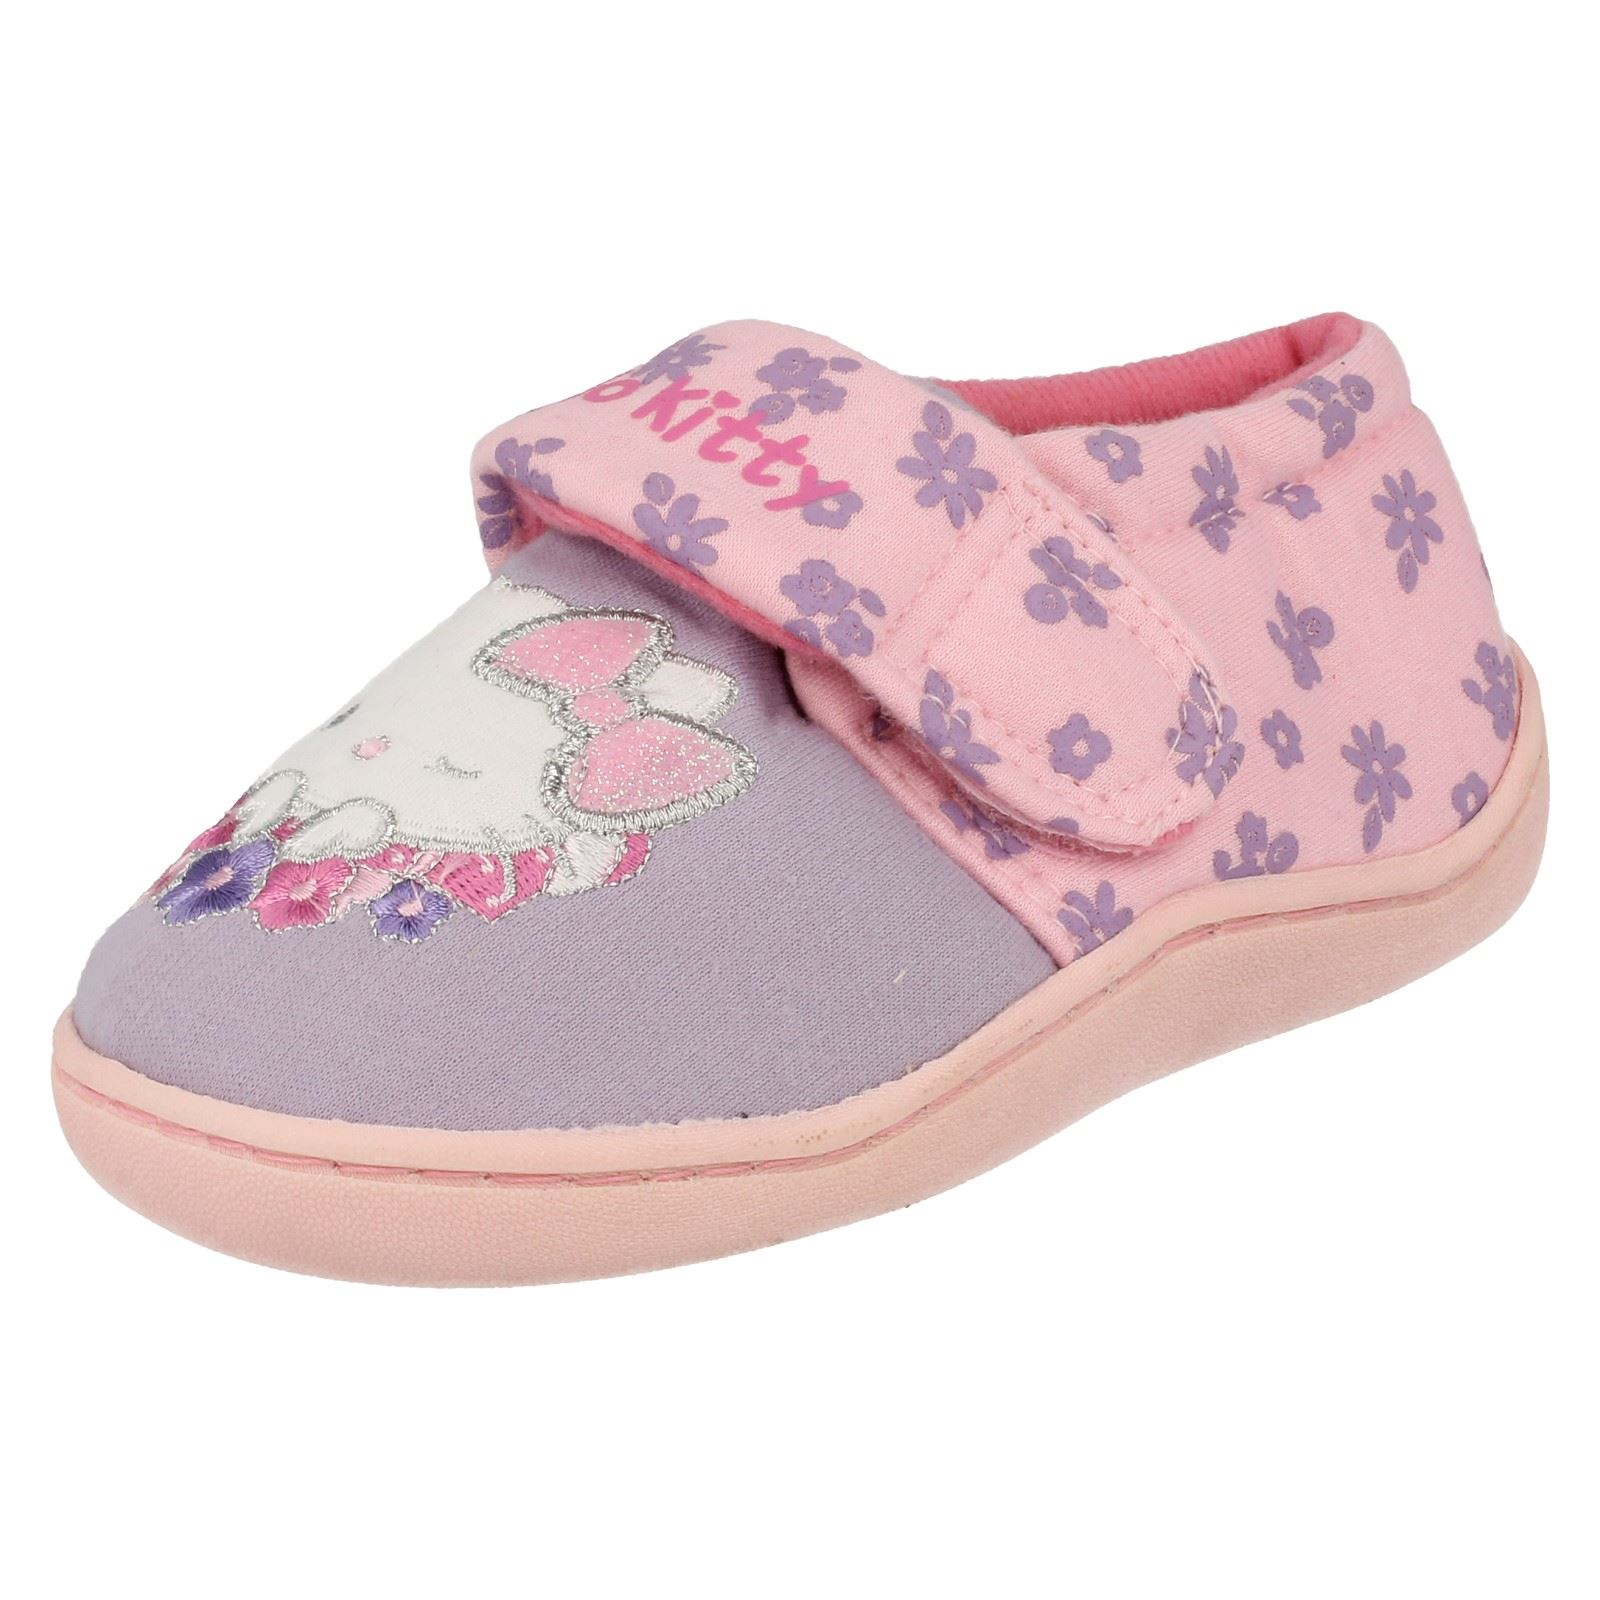 Girls Character Hello Kitty House Slippers